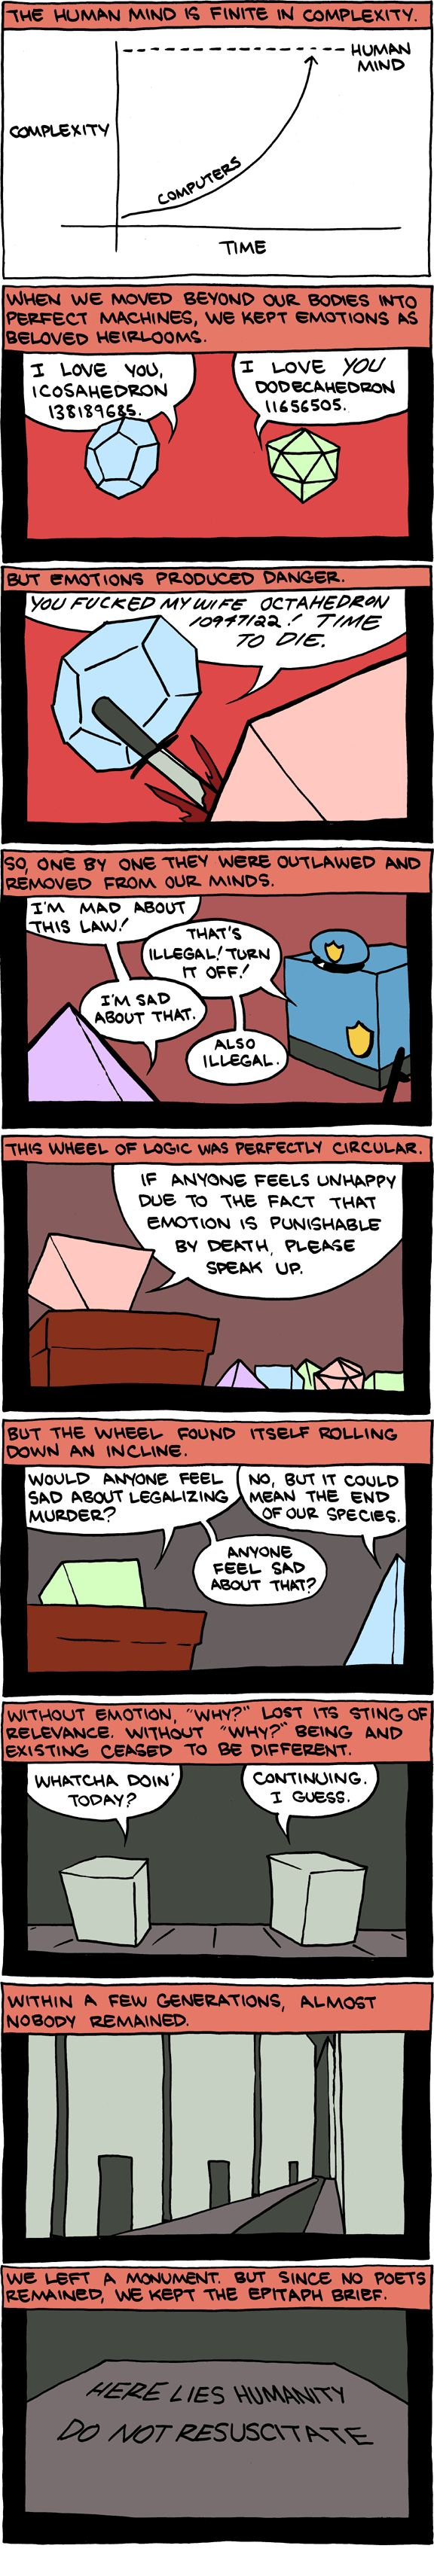 I always like these comics. The little intellectual jokes. Kinda. Or maybe I'm just weird. Makes more sense.